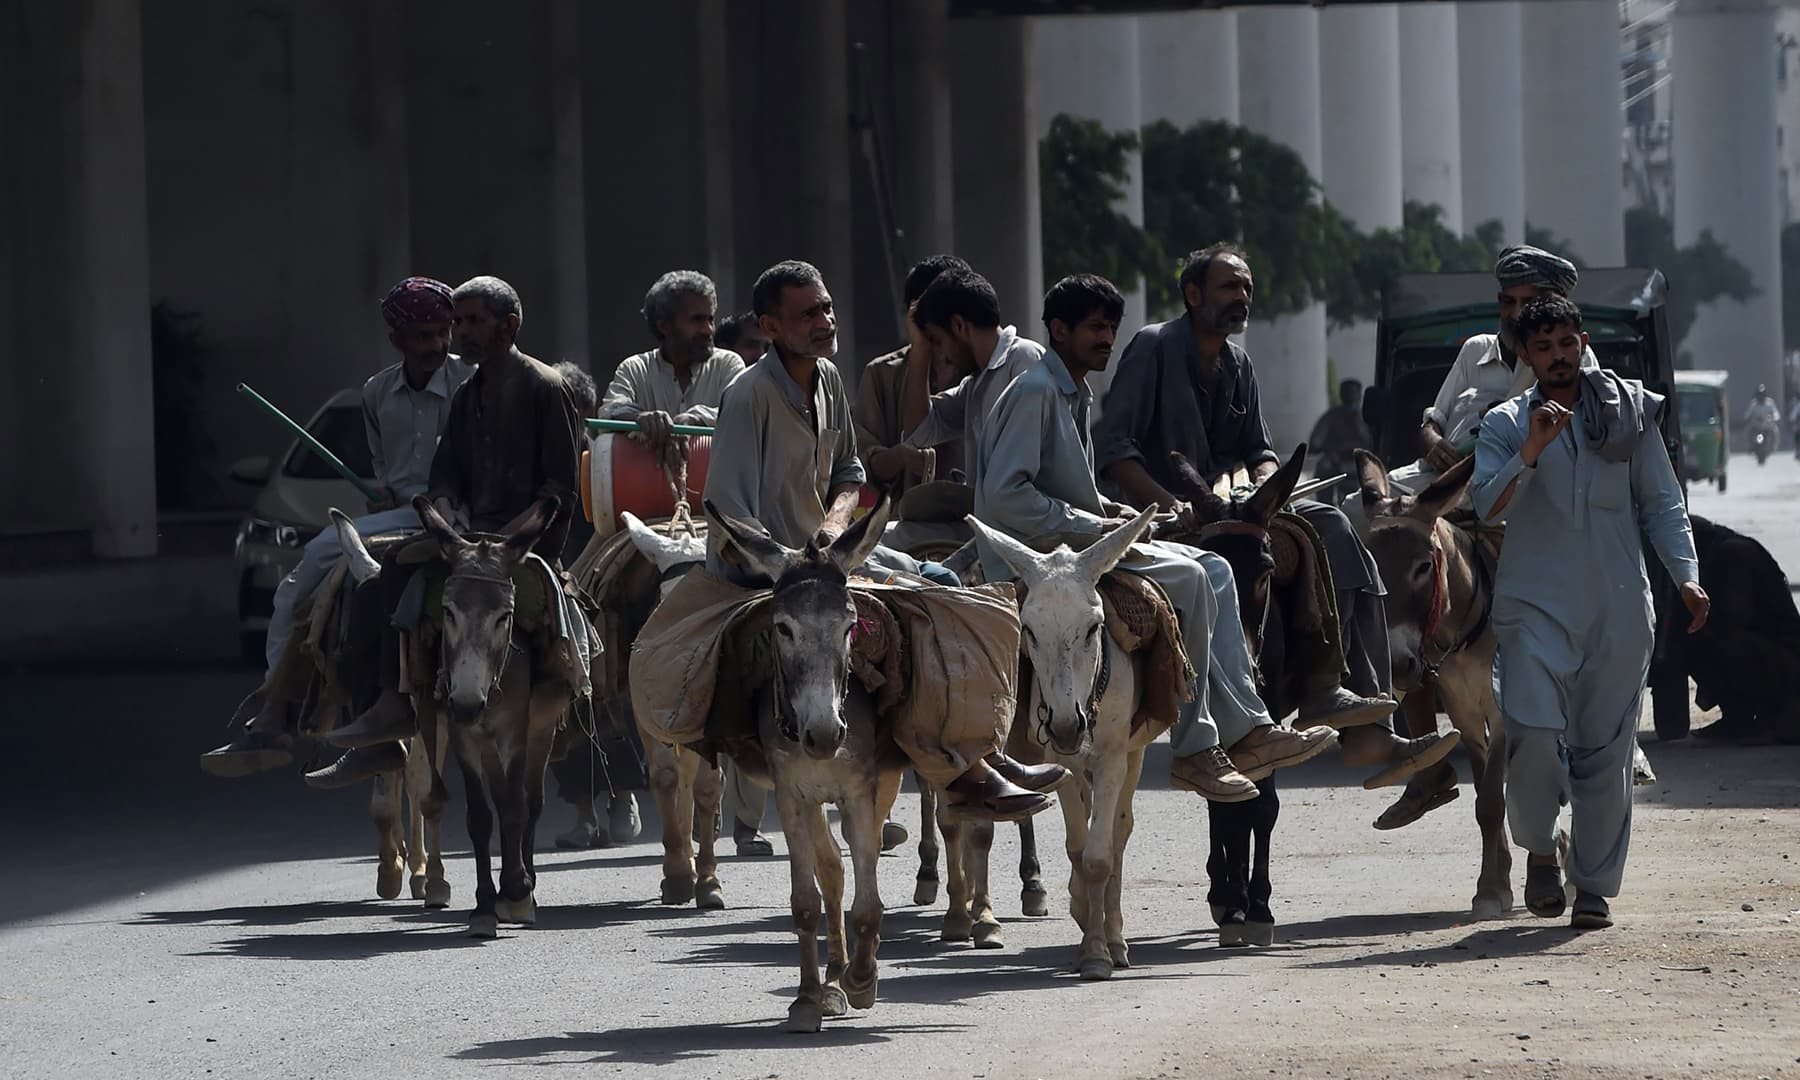 Labourers ride on their donkeys on a street during the International Labour Day in Lahore. — AFP